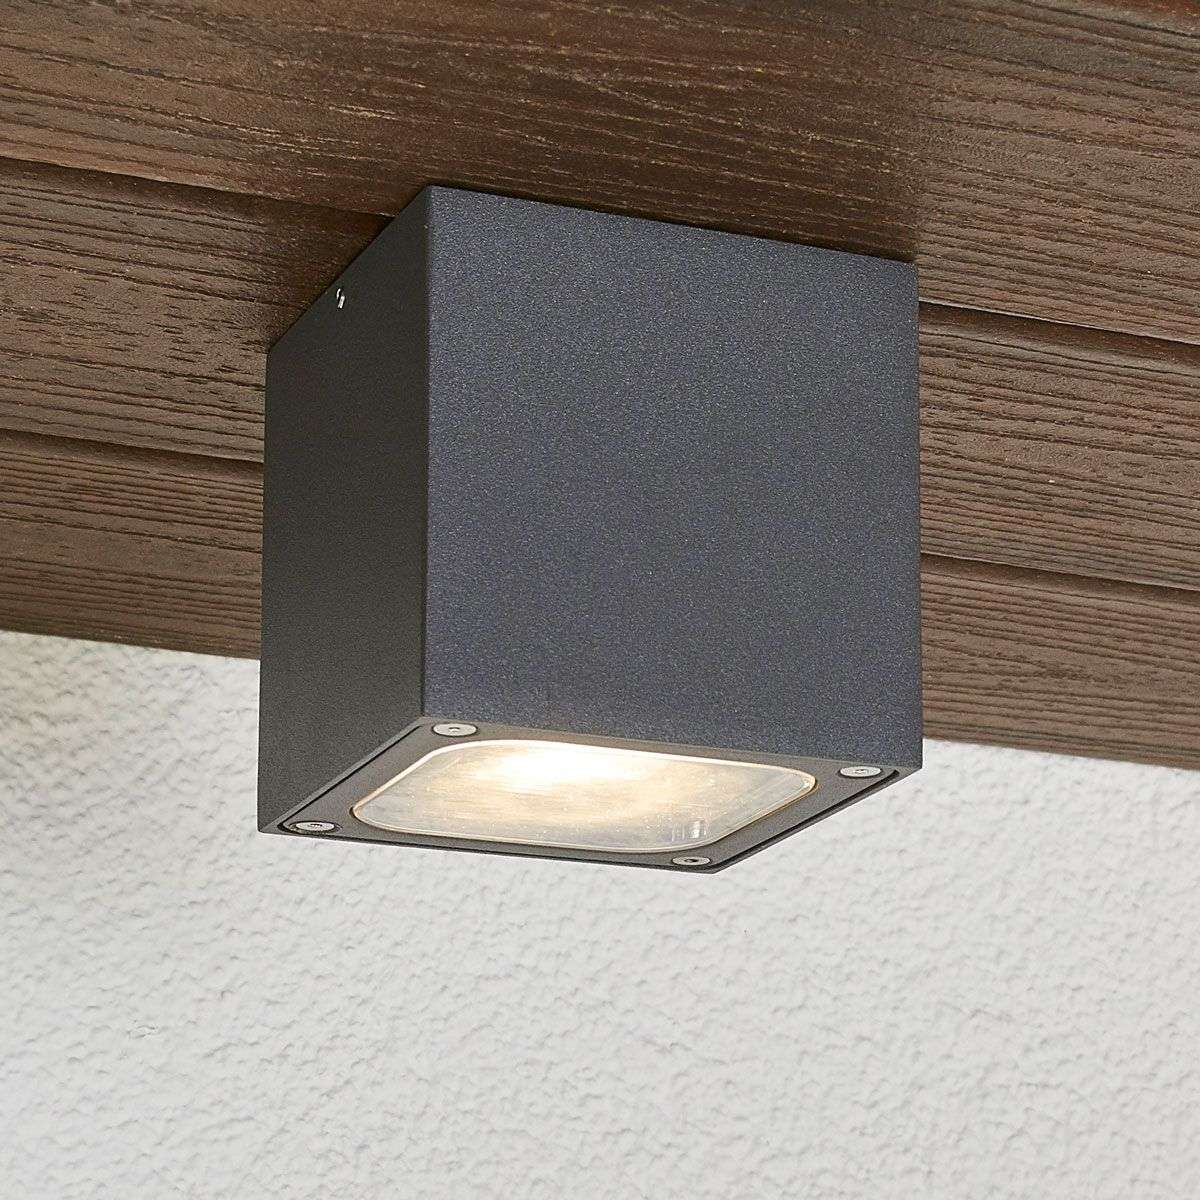 patio lighting the ceiling en and rechargeable home led categories fans light p outdoor more porch depot canada umbrella lights